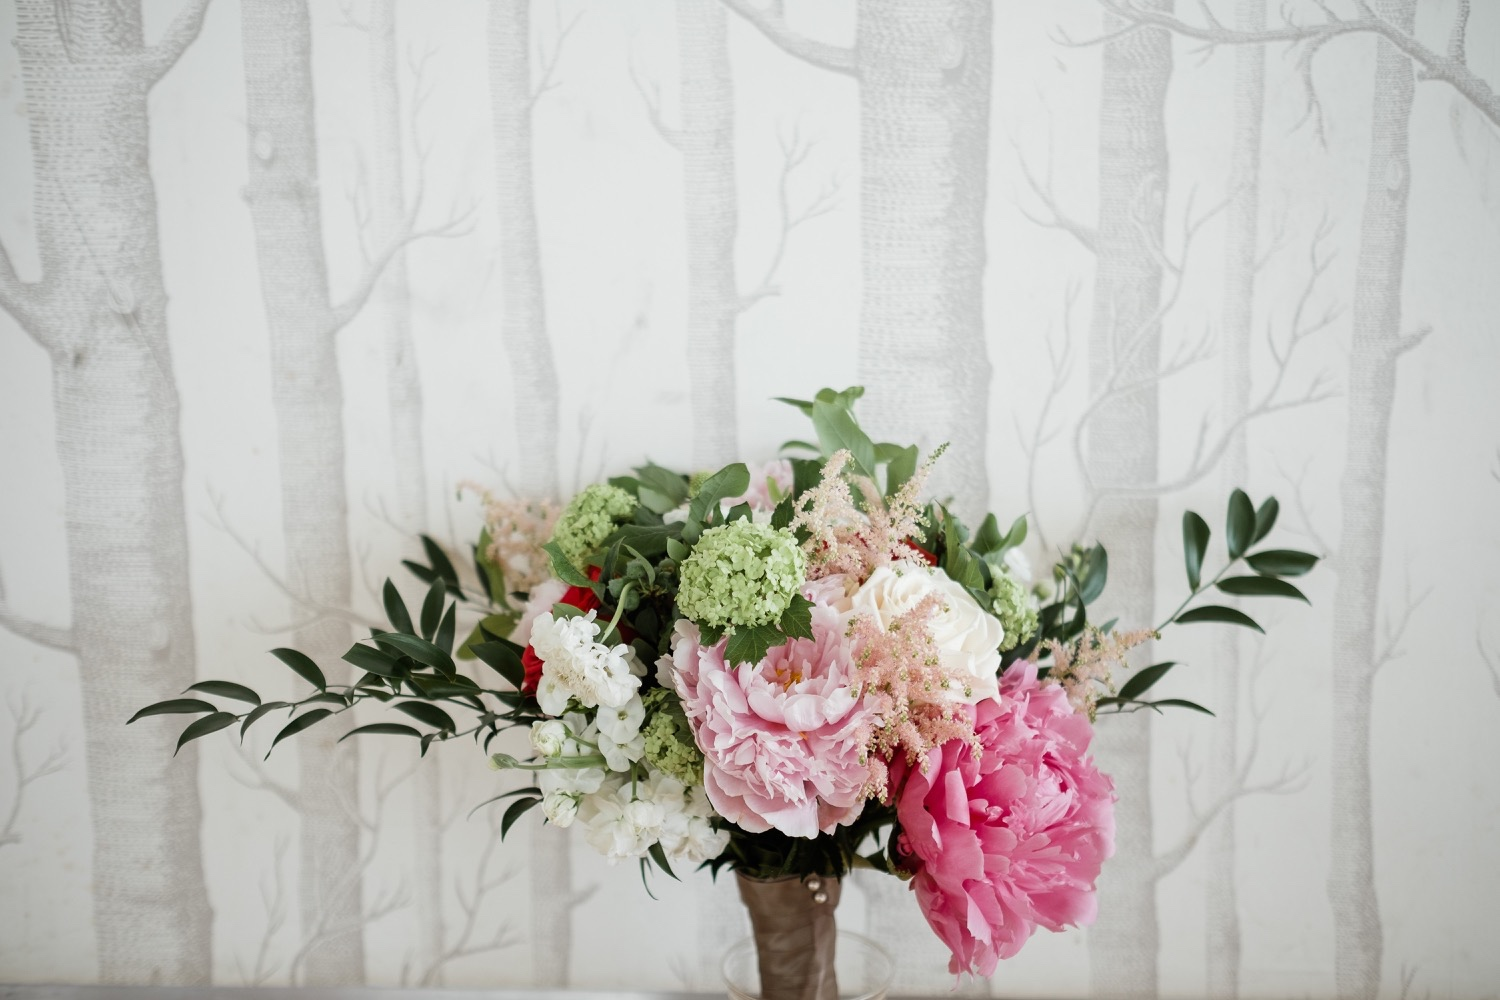 The Garrison Wedding, The Garrison venue, Hudson Valley wedding, hudson valley wedding photographer, catskills wedding photographer, the garrison wedding photos, best catskills wedding photographer, pink florals, floral inspo, green pink florals